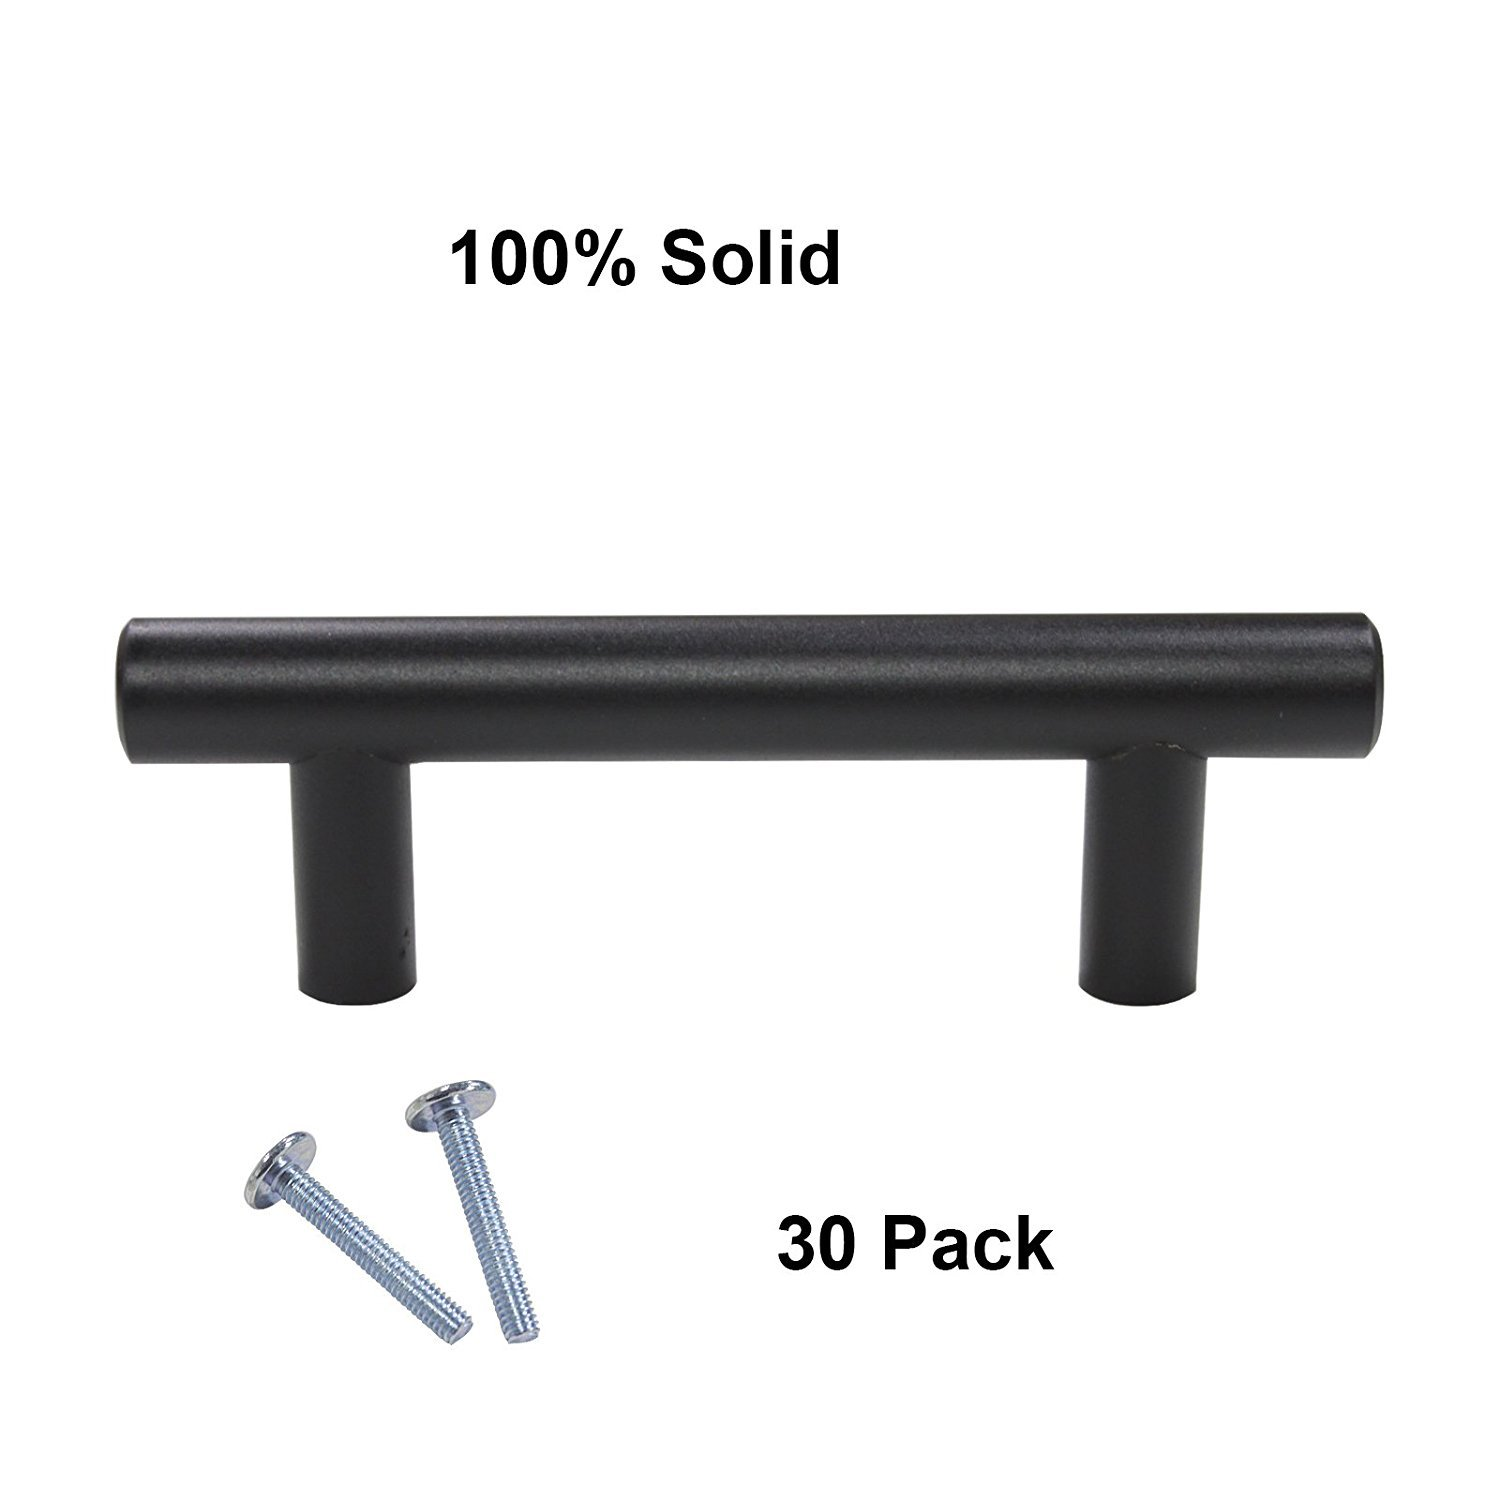 Gobrico Hole Centers 1-1/2'' (64mm) Solid Stainless Steel Cabinet Cupboard Kitchen Handle T Bar in Black Whole Length 4'' (100mm) 30Pack